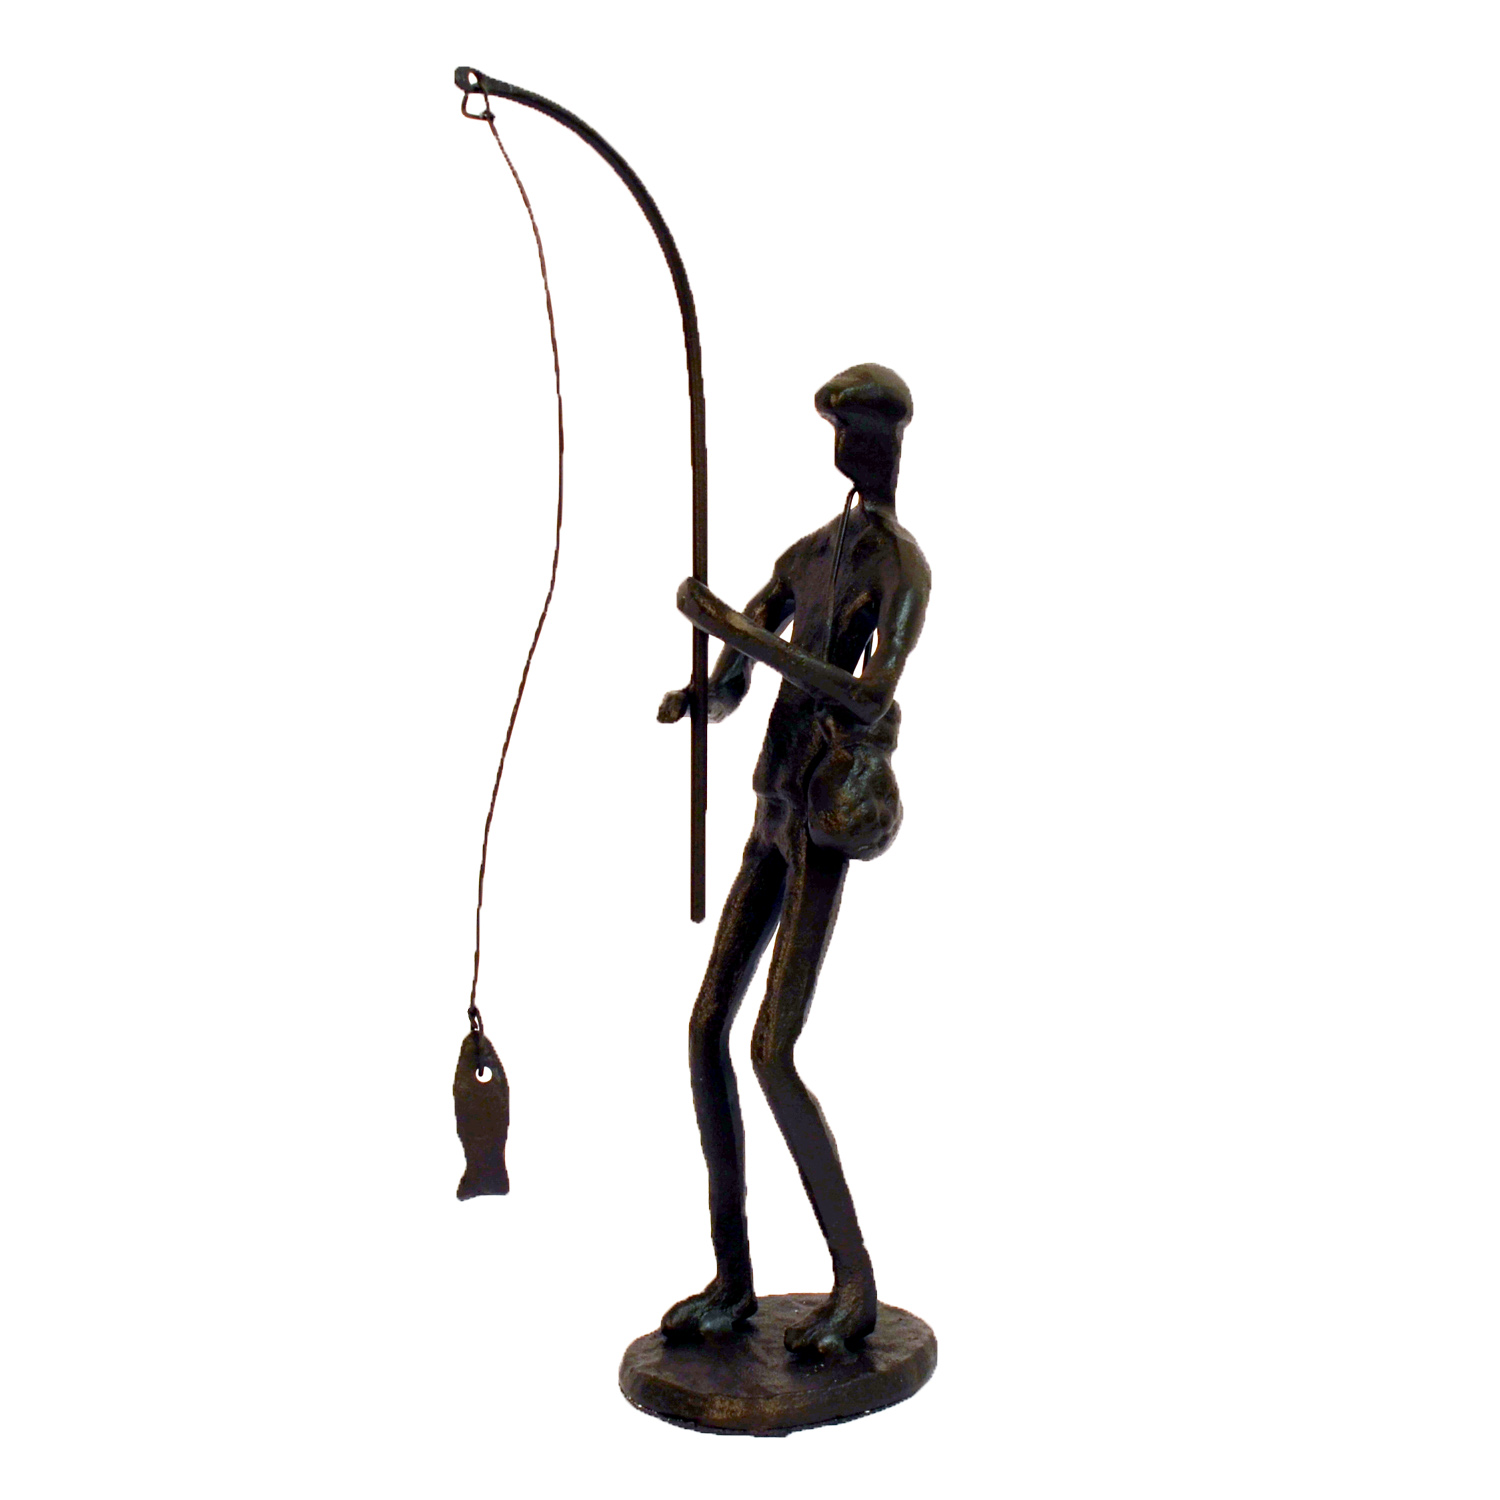 Elur Angler Iron Statue Figurine 22cm in Mocha Brown - Ruby's Garden Boutique